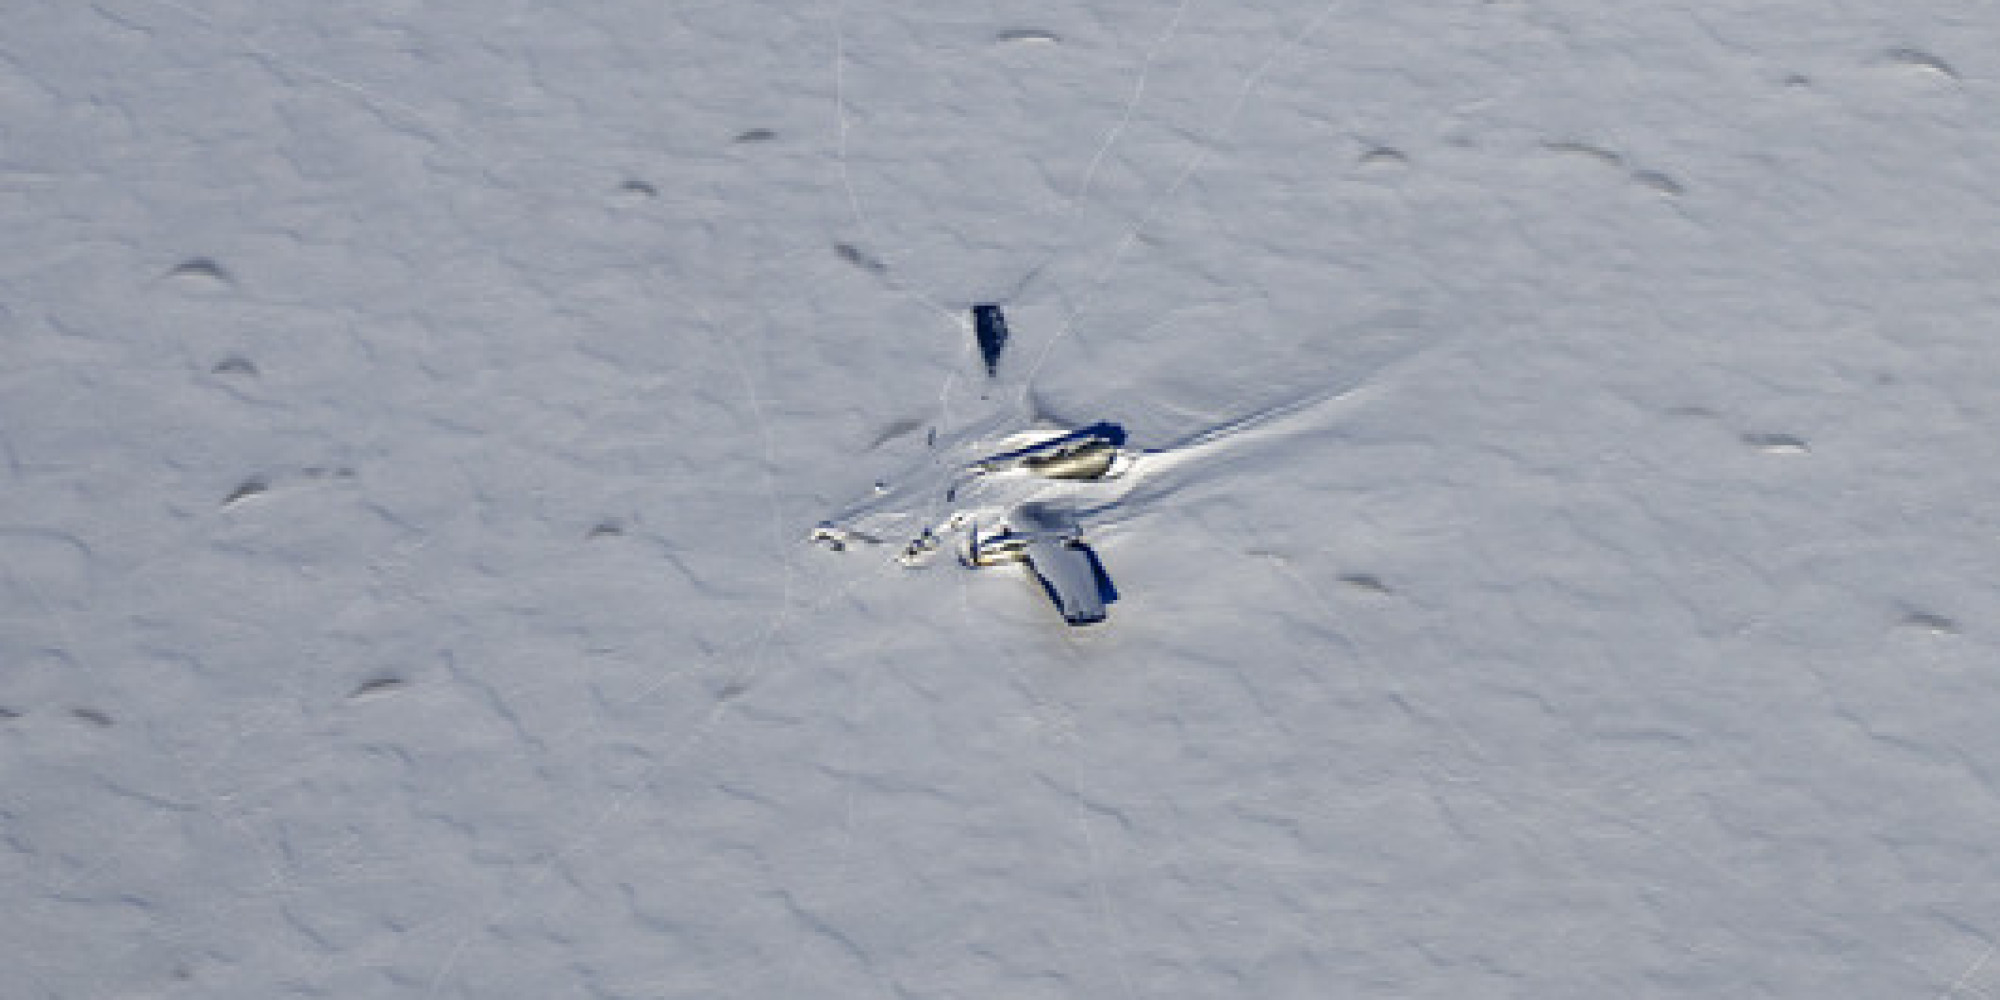 Wreckage Of Cold War Spy Plane Spotted On Remote Ice Sheet   HuffPost